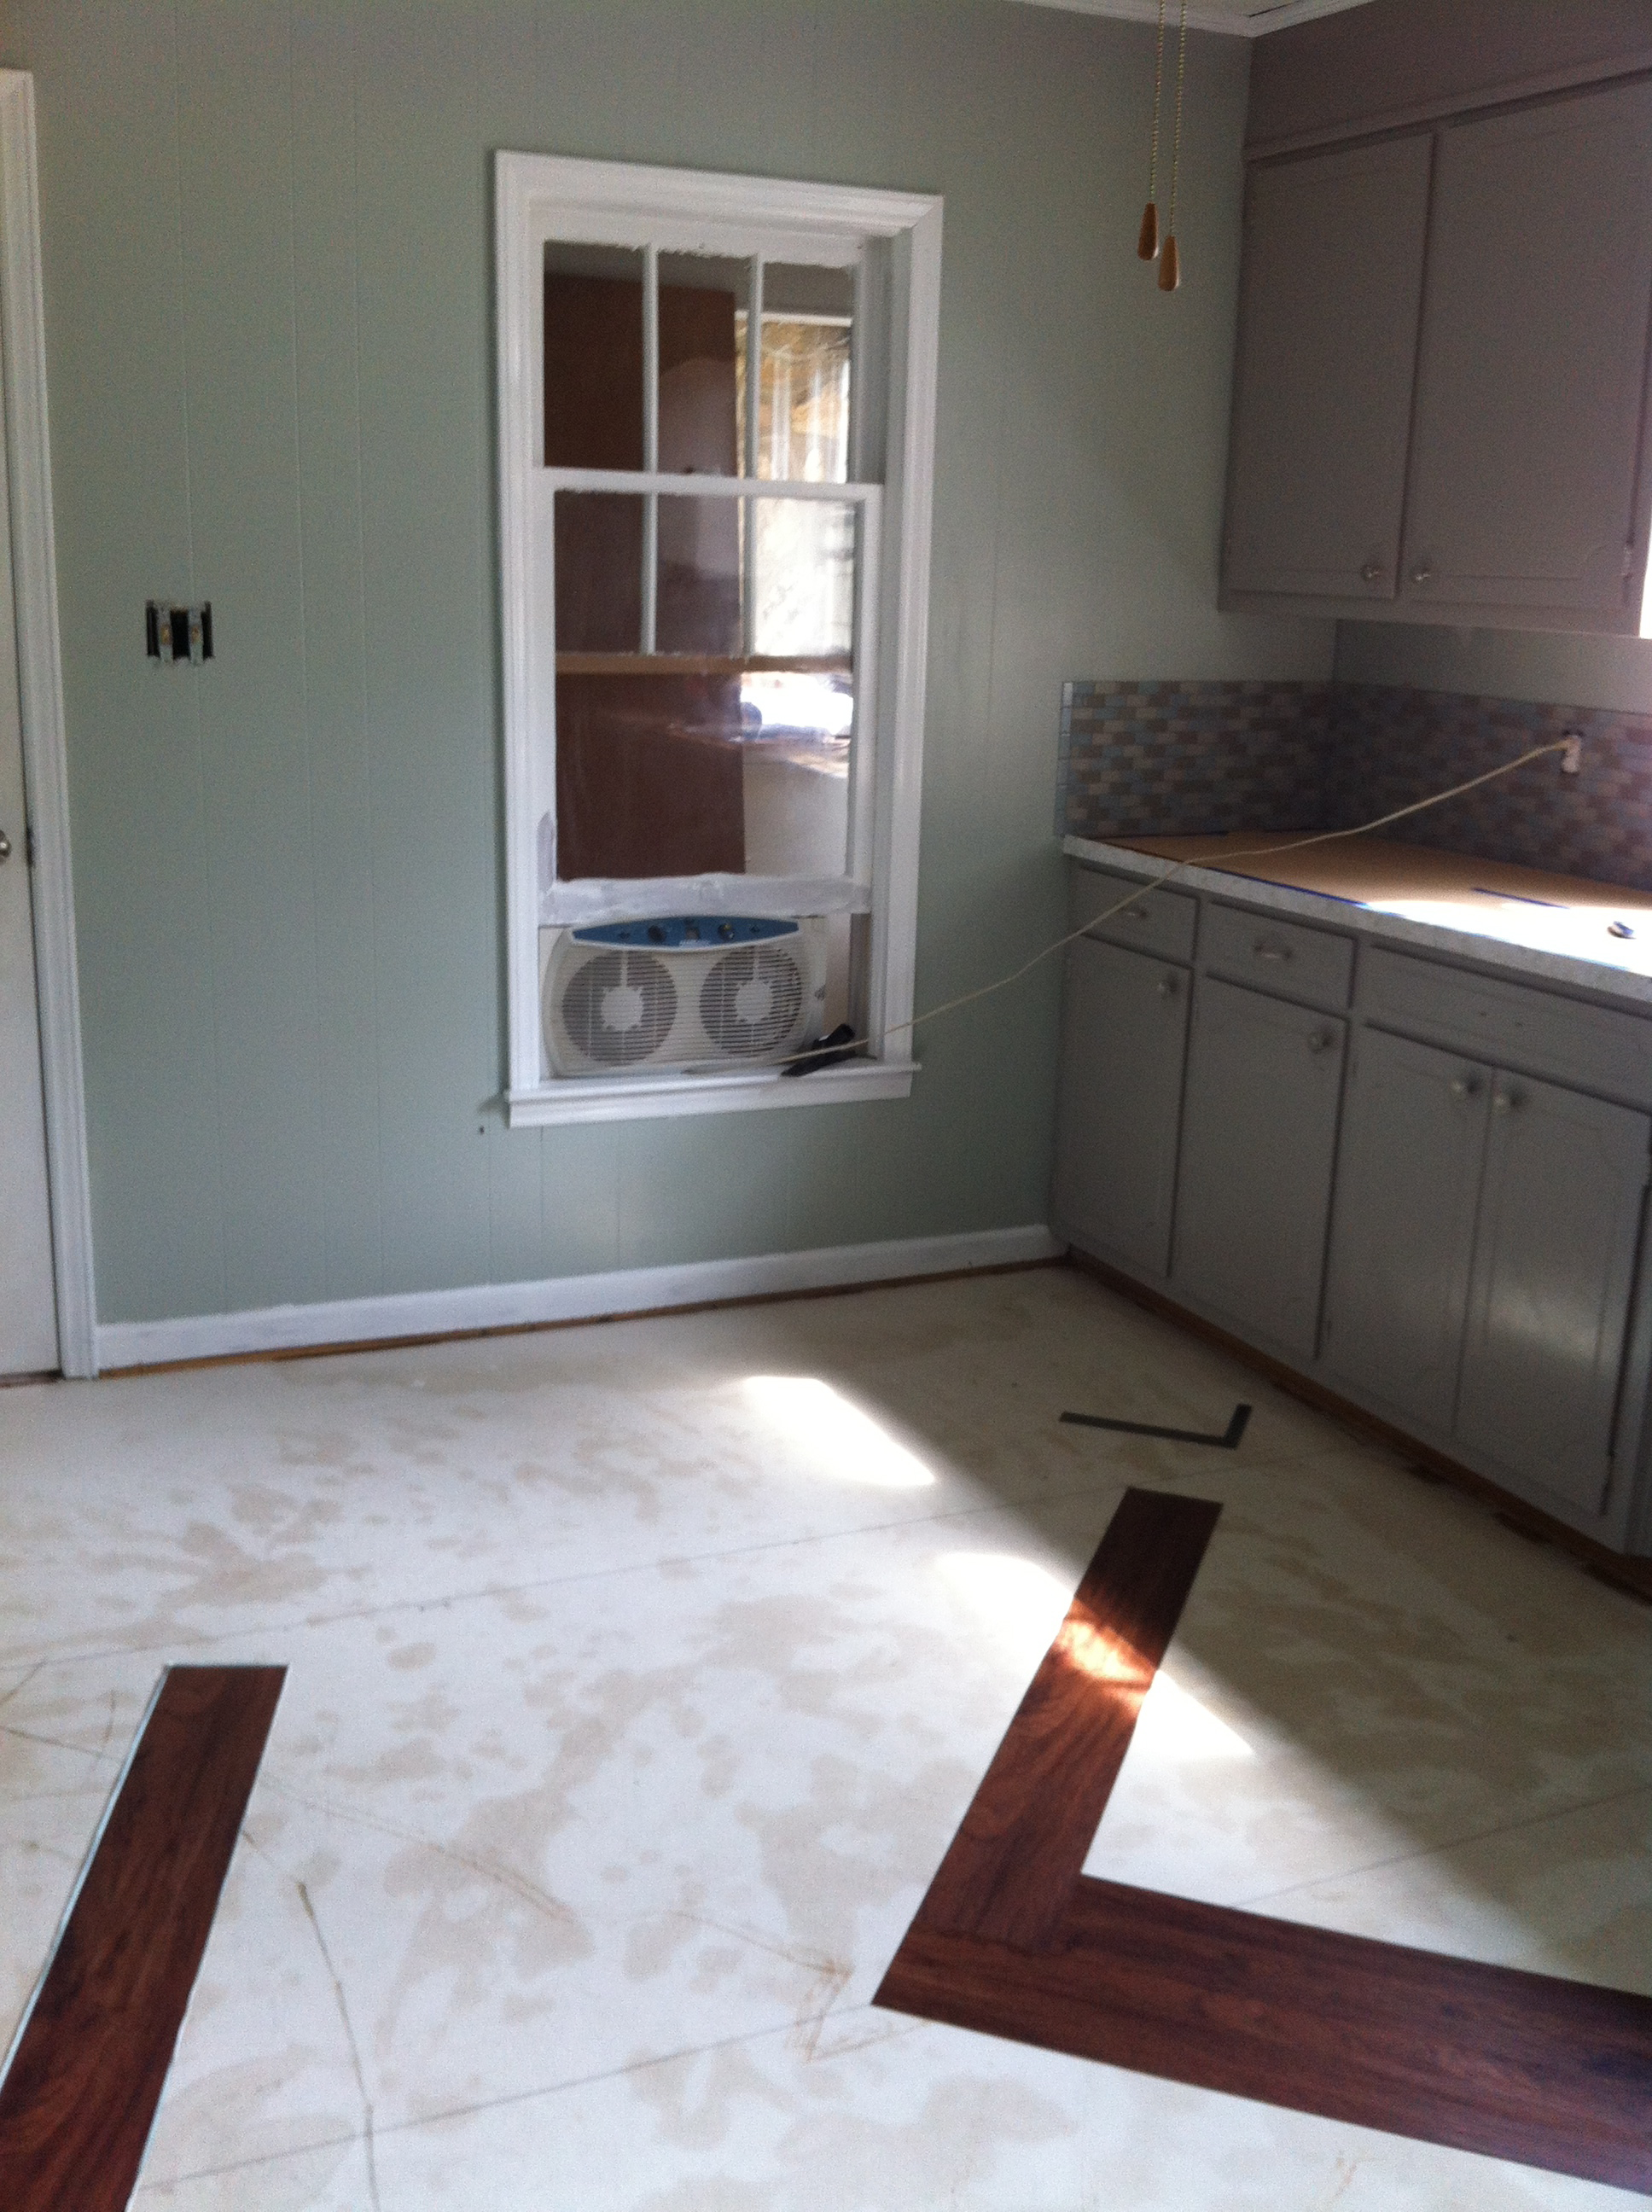 shaw hickory engineered floors plank pictures lowes rustic vinyl pinterest best wpc awesome of flooring designs planks dover floor master trends photos